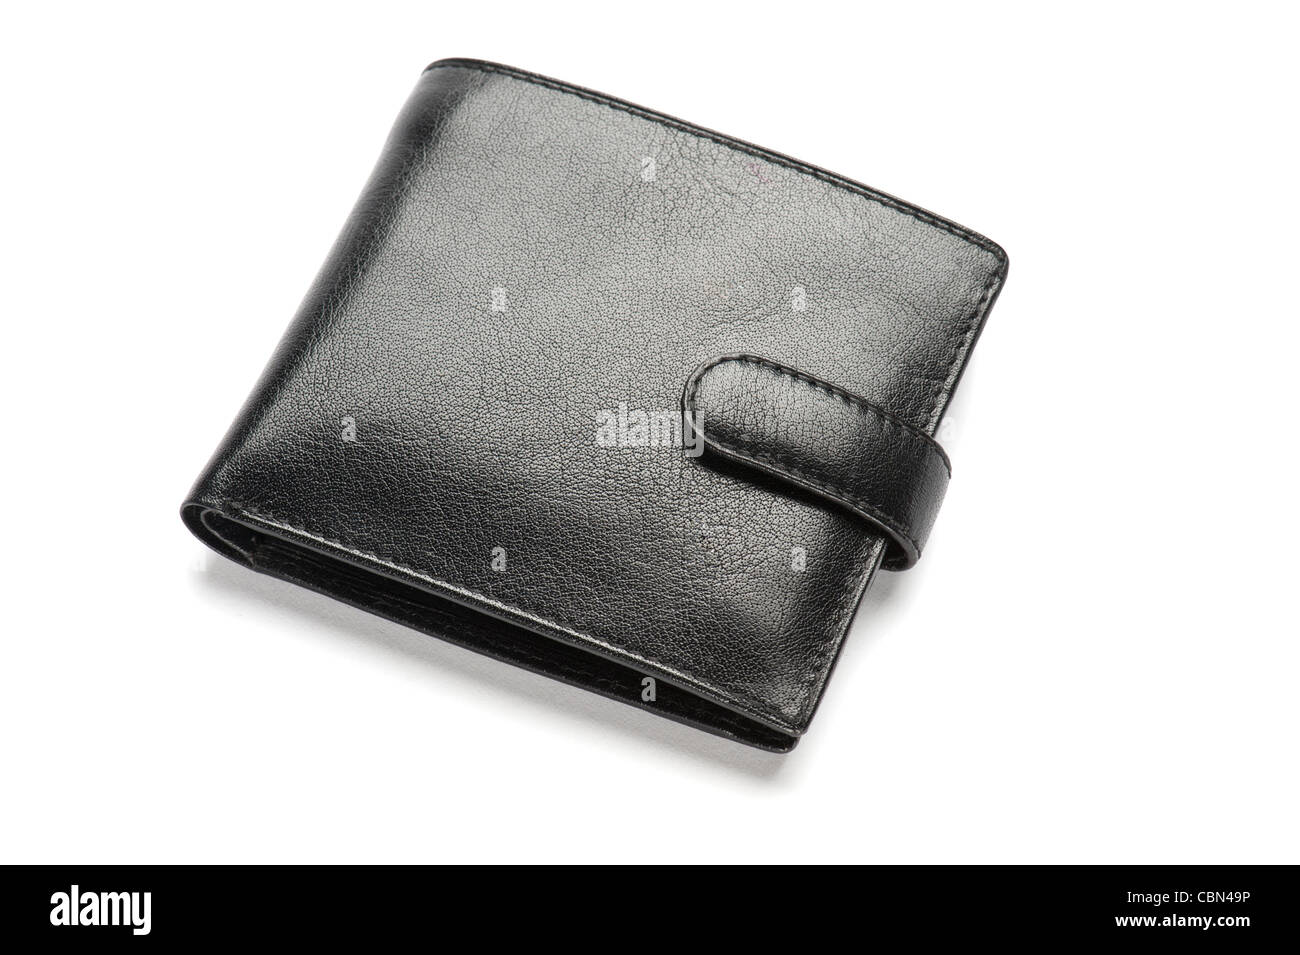 A black leather wallet, close-up - Stock Image